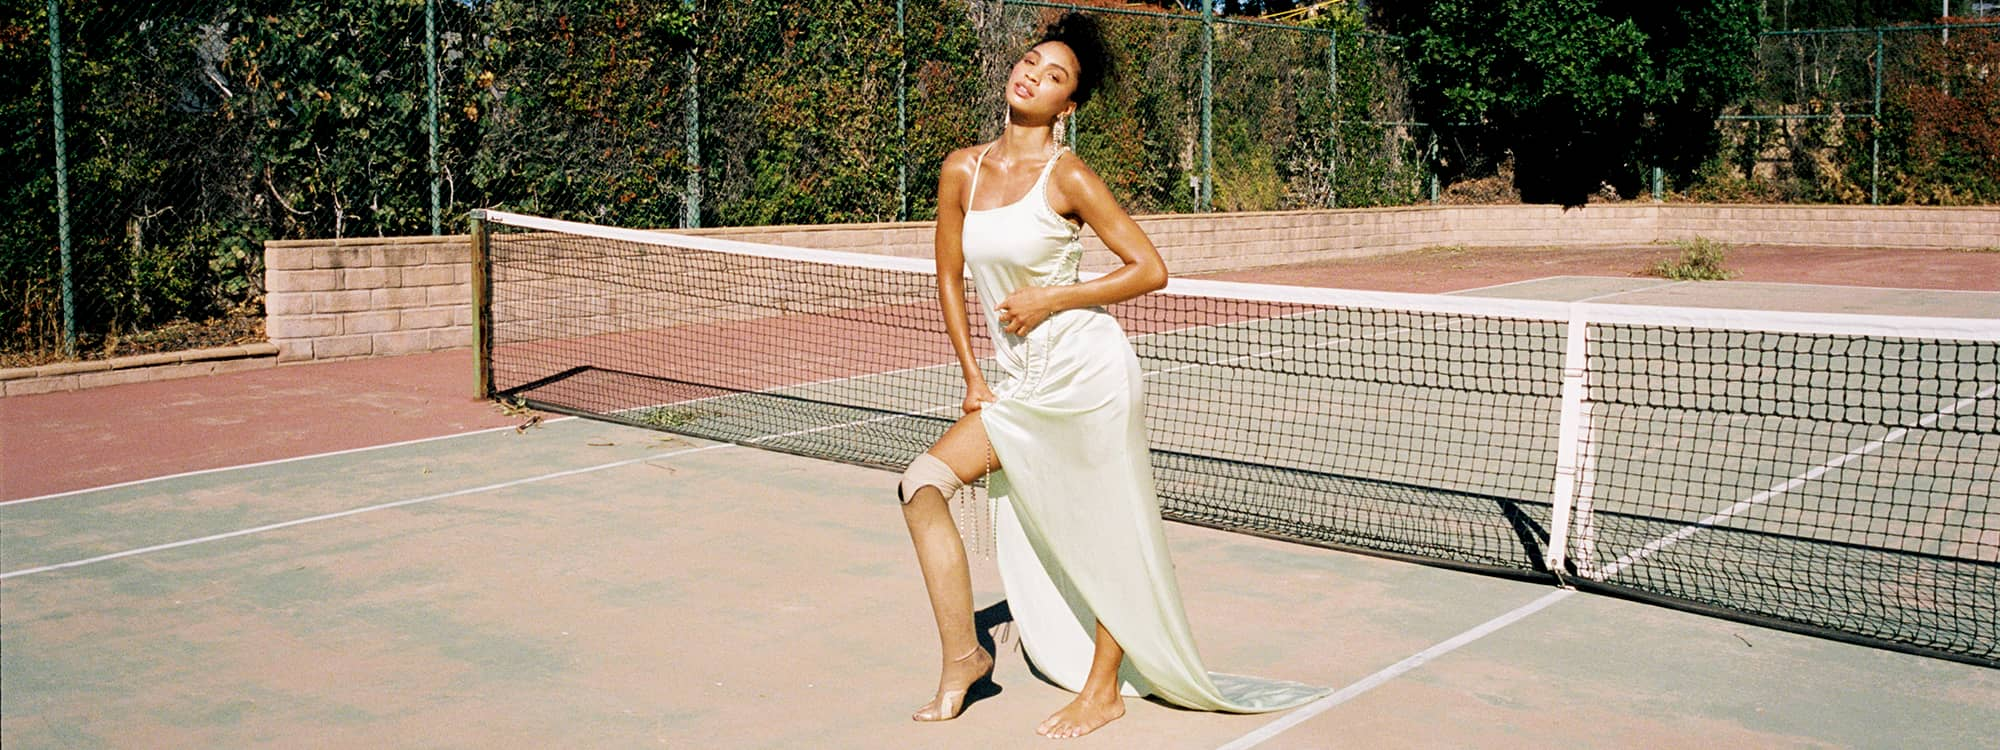 Model Lyric Mariah stands on a tennis court wearing a long silk green dress with her hand on her hip. Her hair is in an updo and her skin is gleaming in the sun. She is popping out her prosthetic leg.